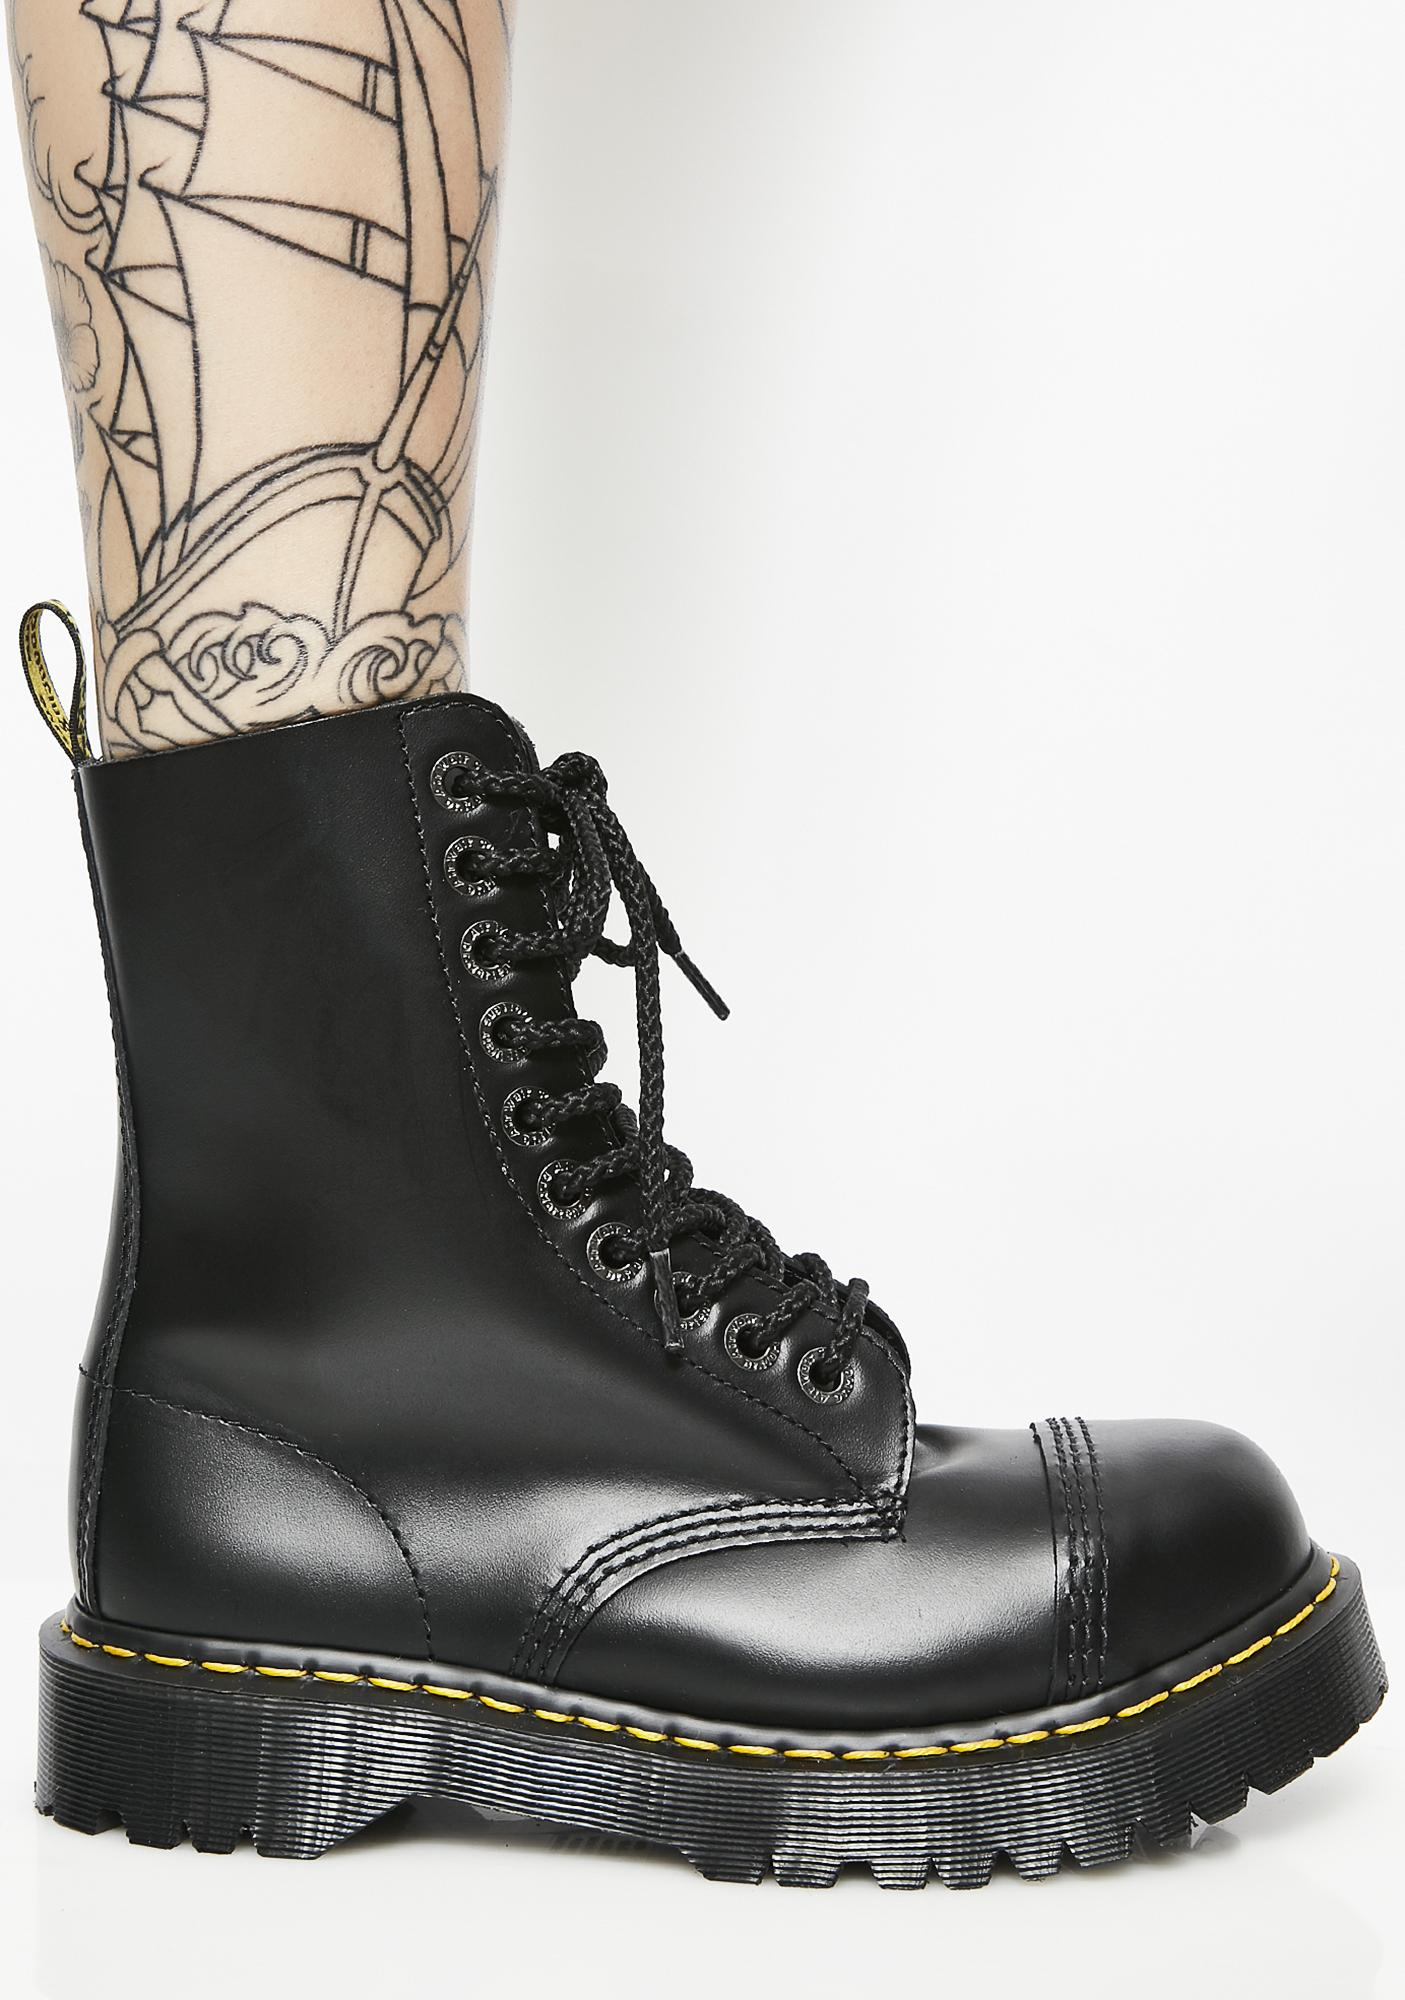 Dr. Martens Genuine Leather 8761 BXB Boots